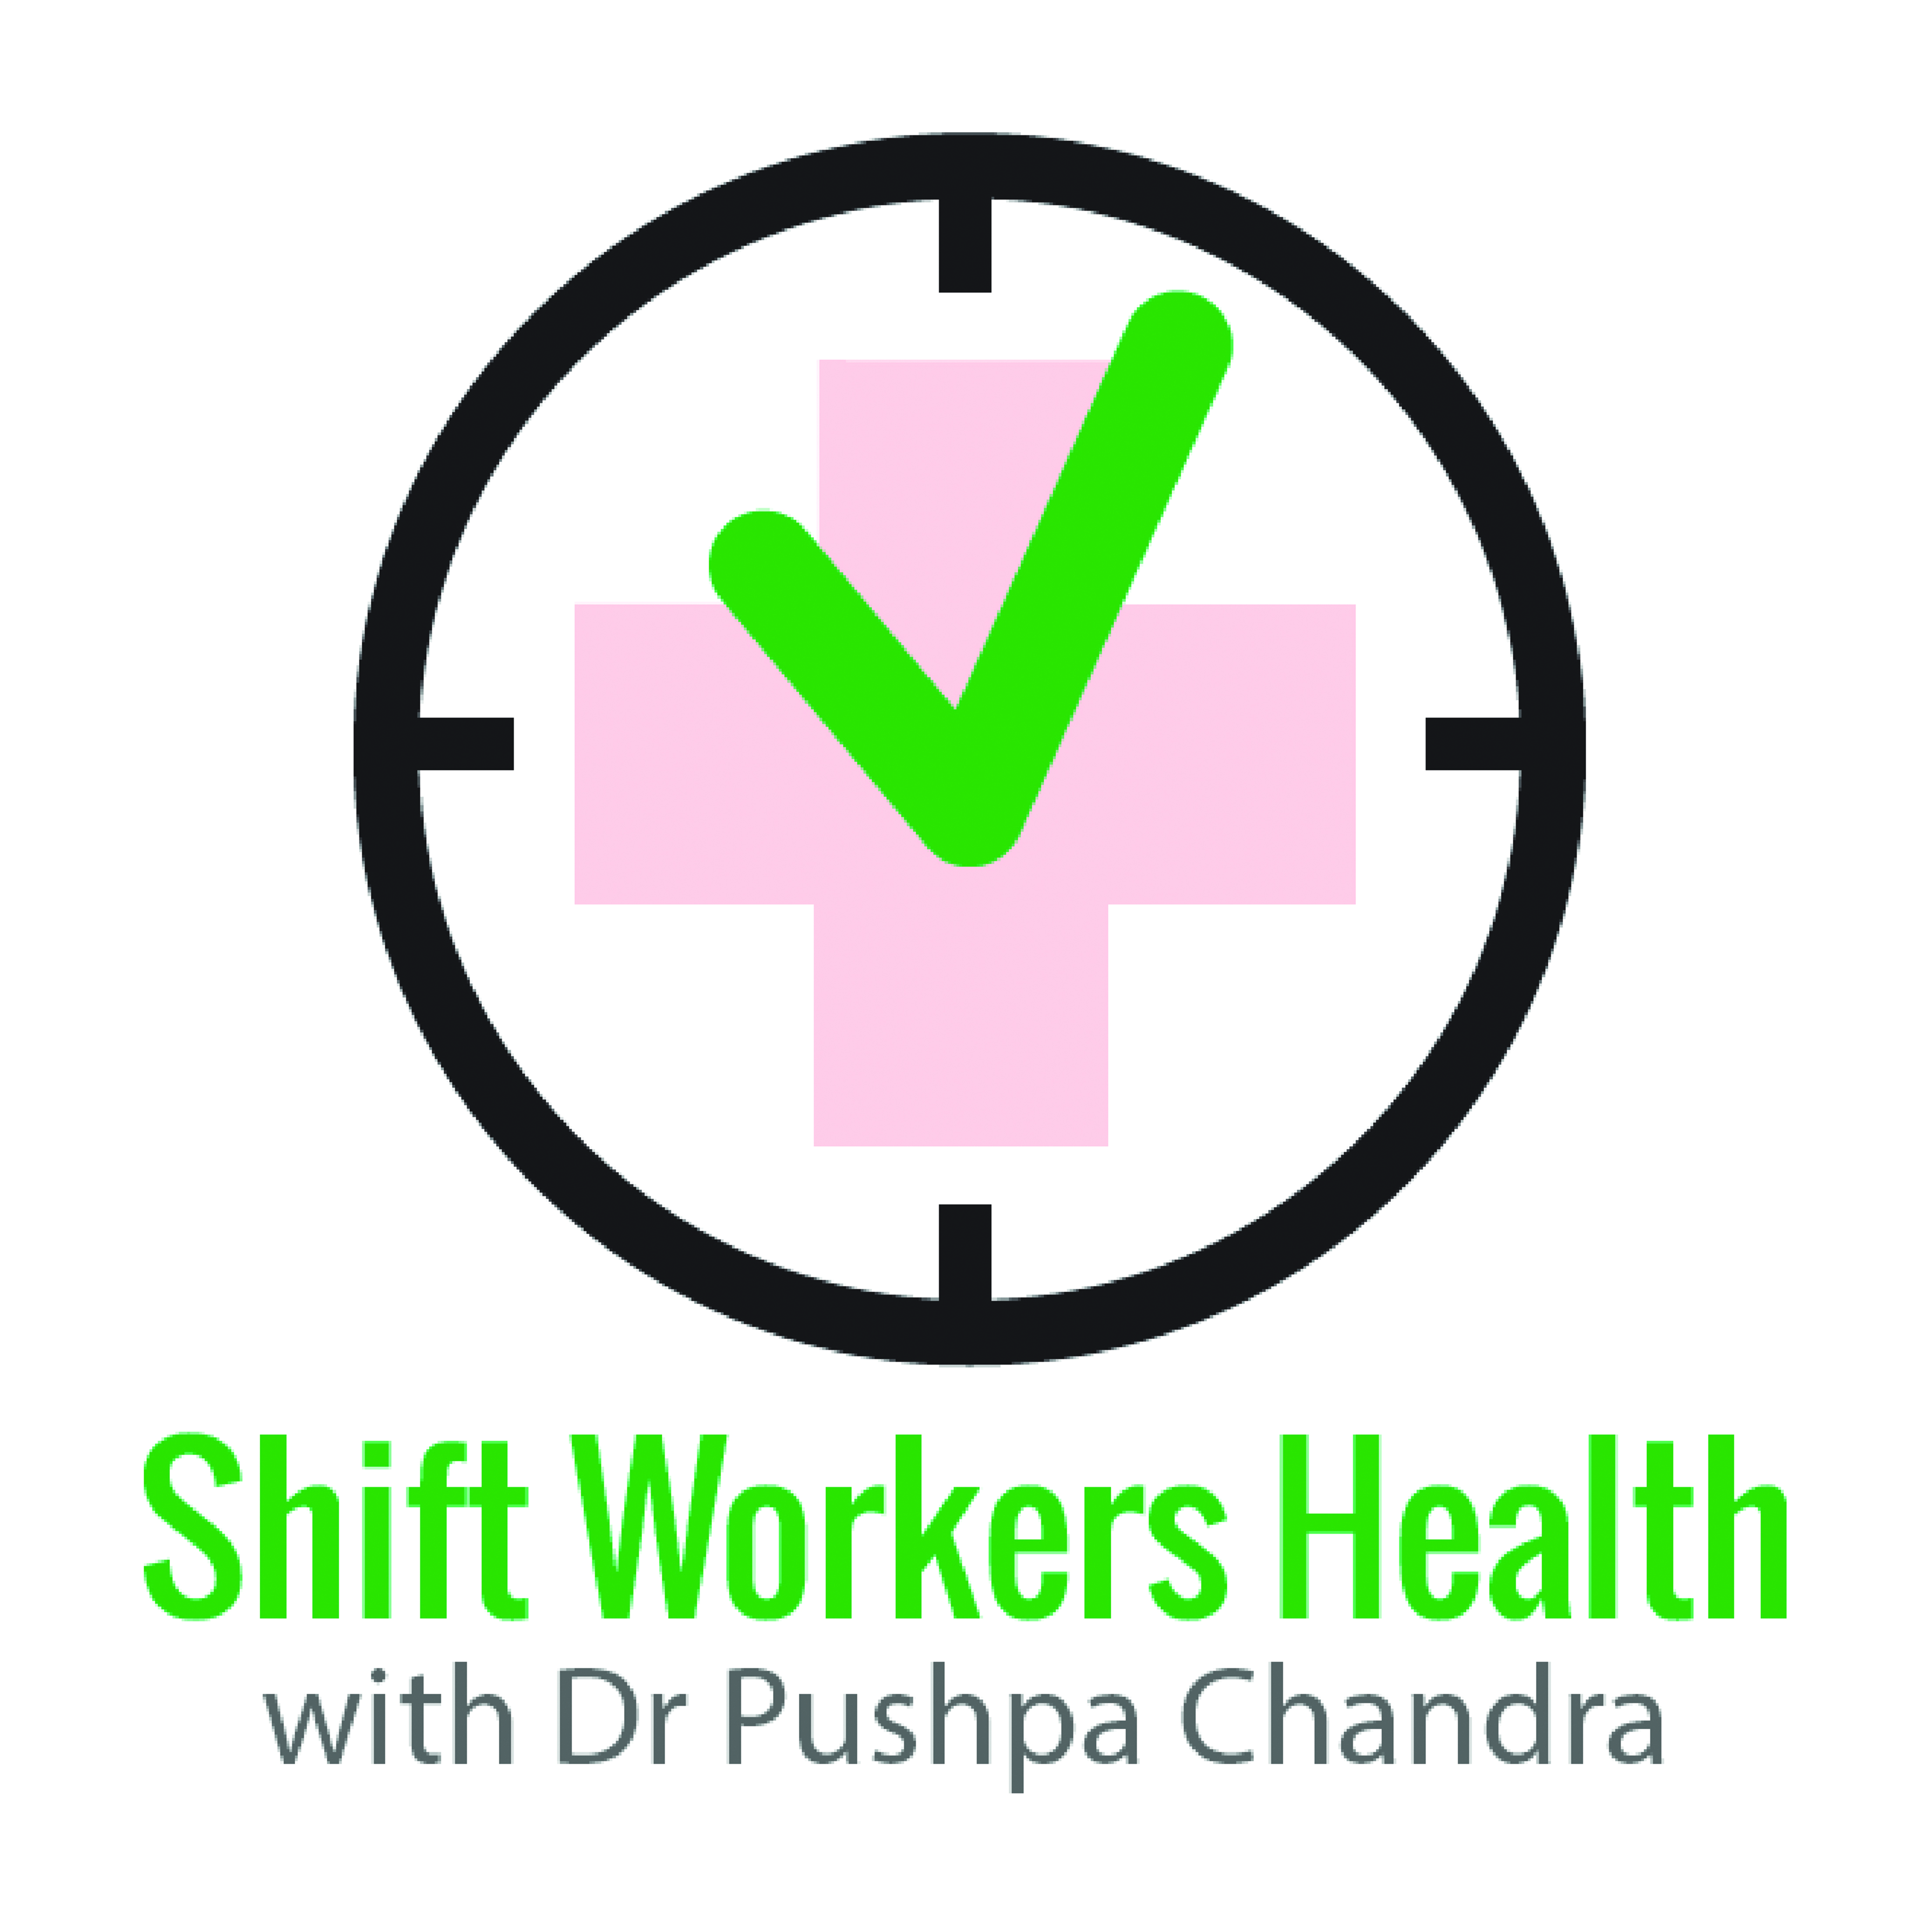 Shiftworkers Health